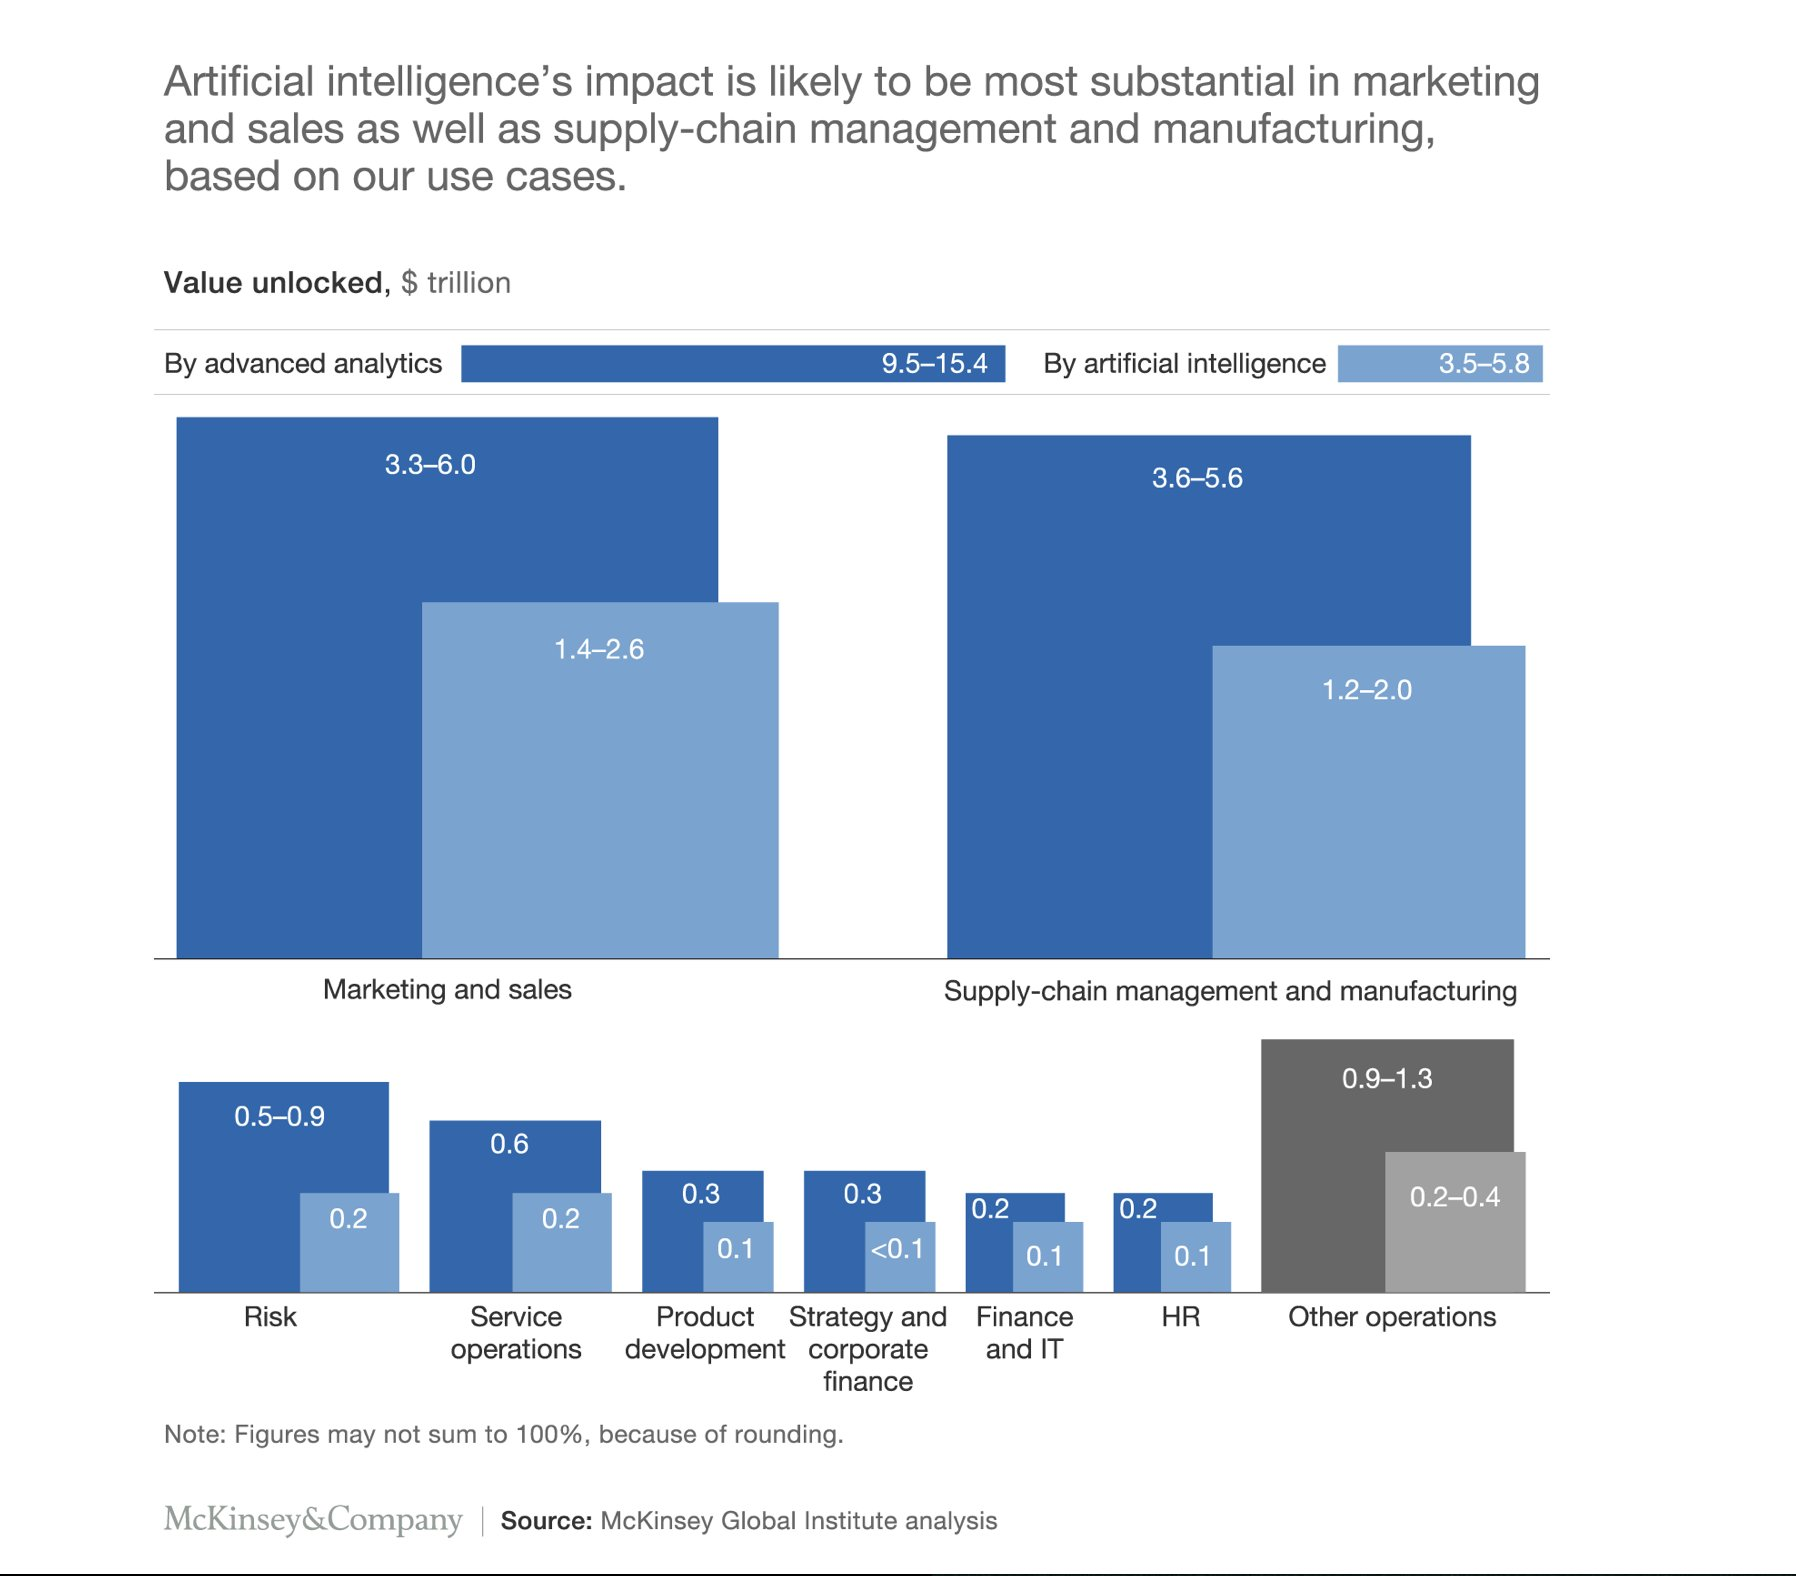 9,5-15,7 trillion USD as Value unlocked by Advanced Analytics worldwide and 3,5-5,8 by AI 9,5-15,7 trillion USD as Value unlocked by Advanced Analytics worldwide and 3,5-5,8 by AI